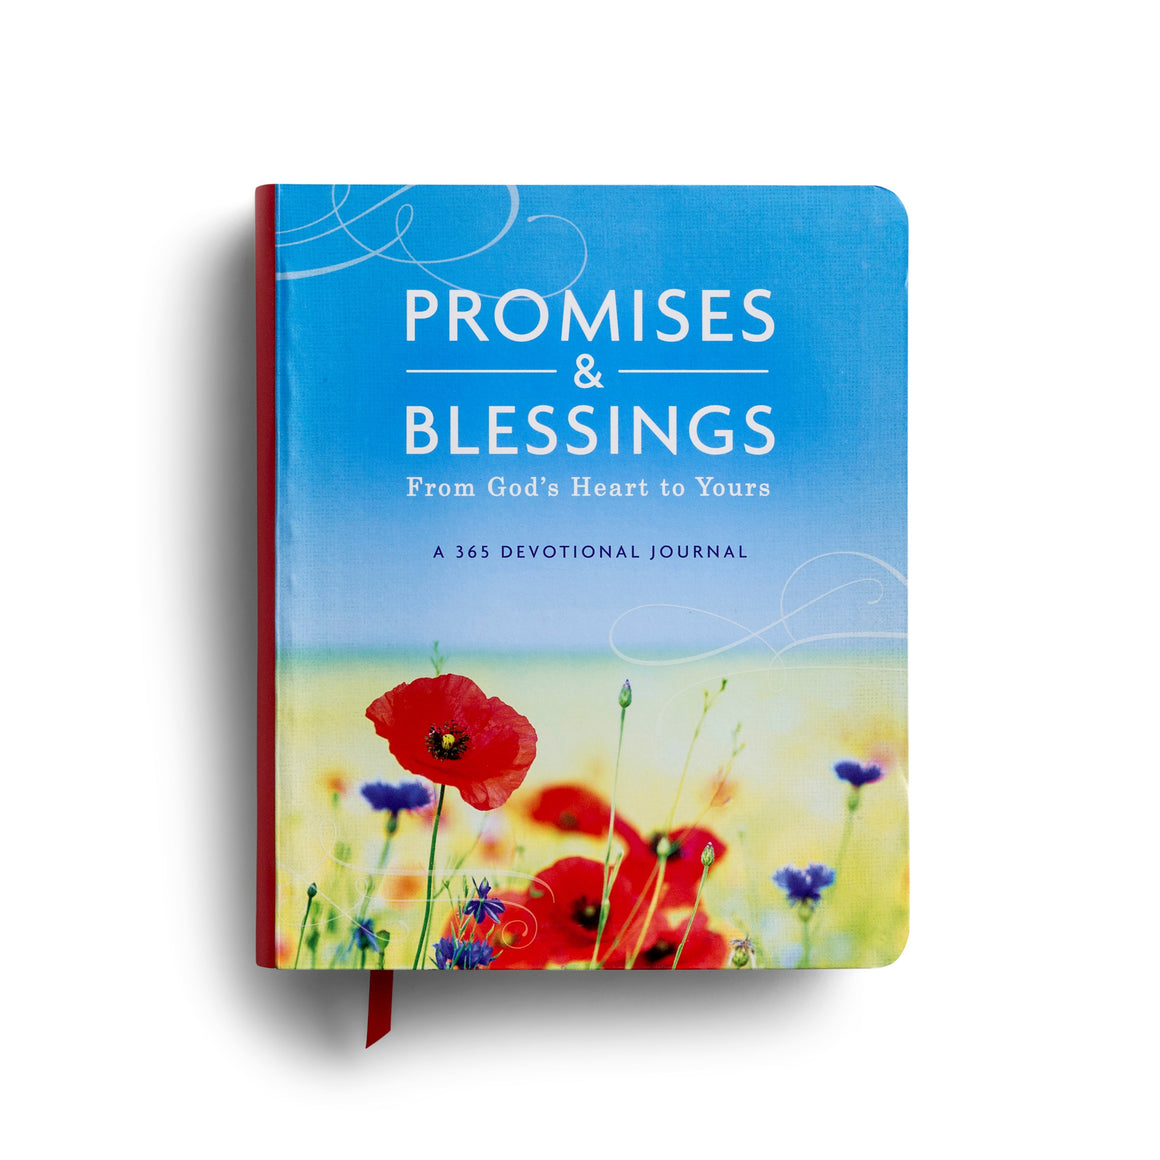 Promises & Blessings, From God's Heart to Yours - 365 Day Devotional Journal